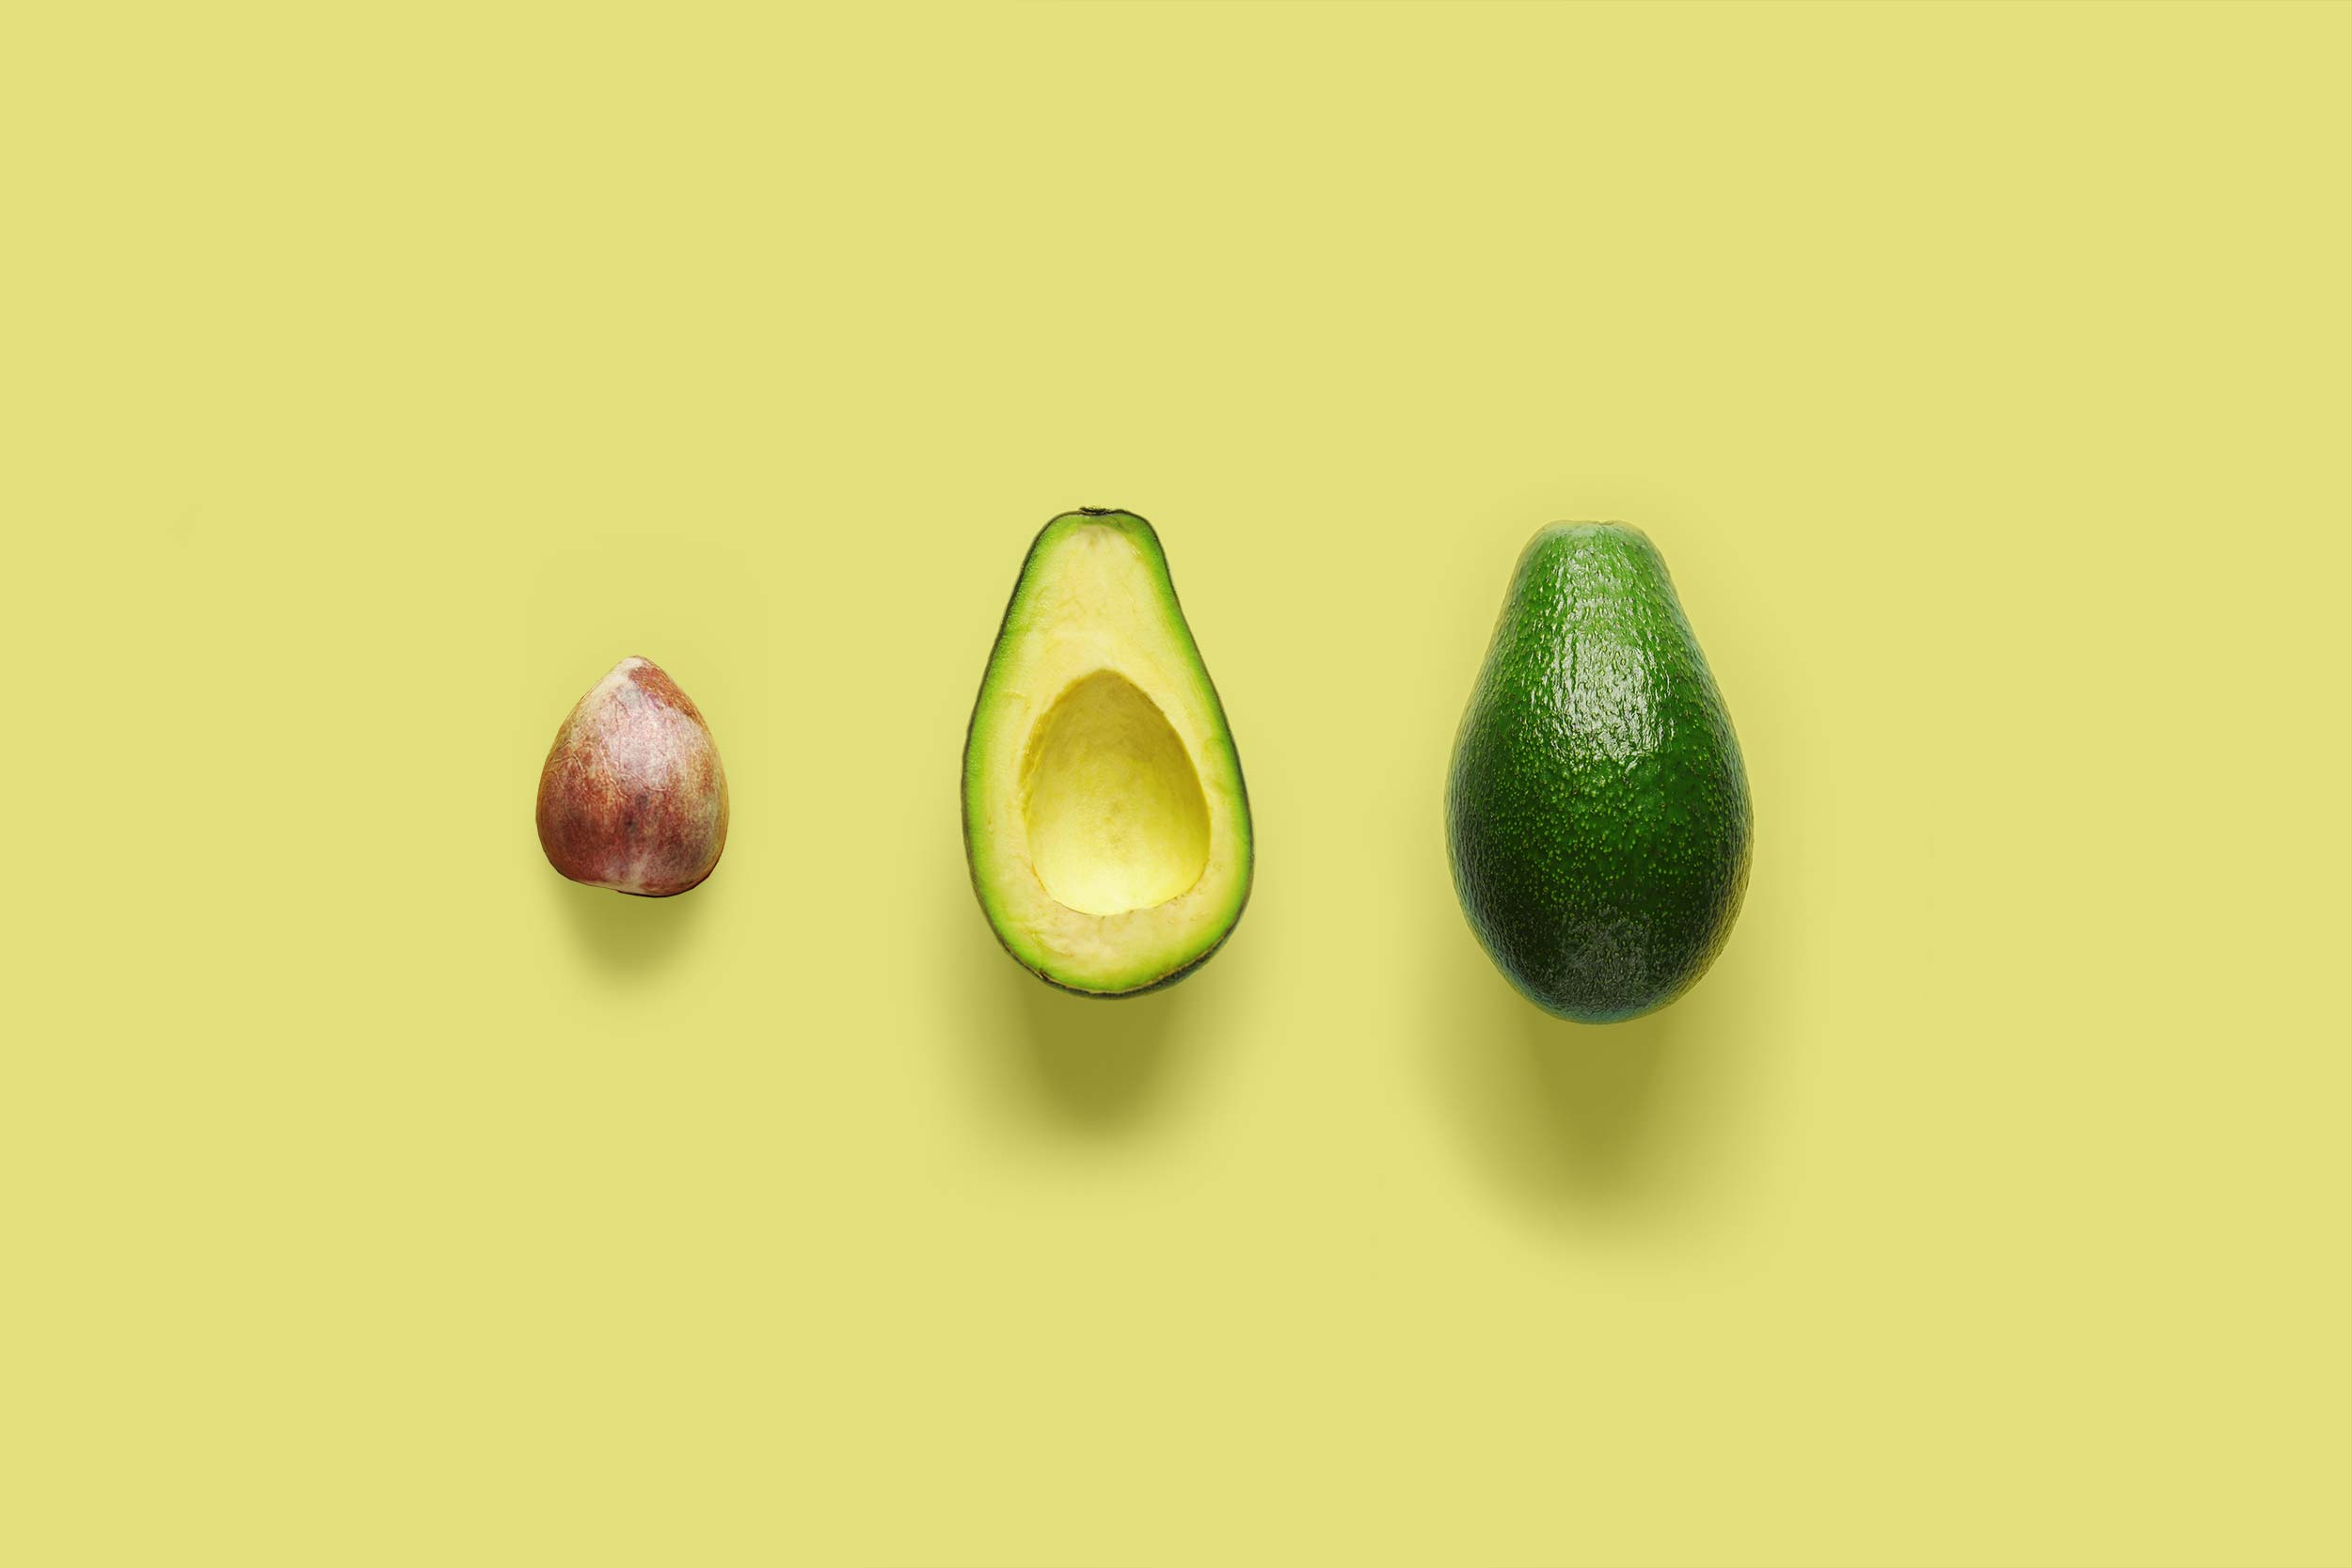 The seed of an avocado, the flesh in the skin of an avocado and a whole avocado